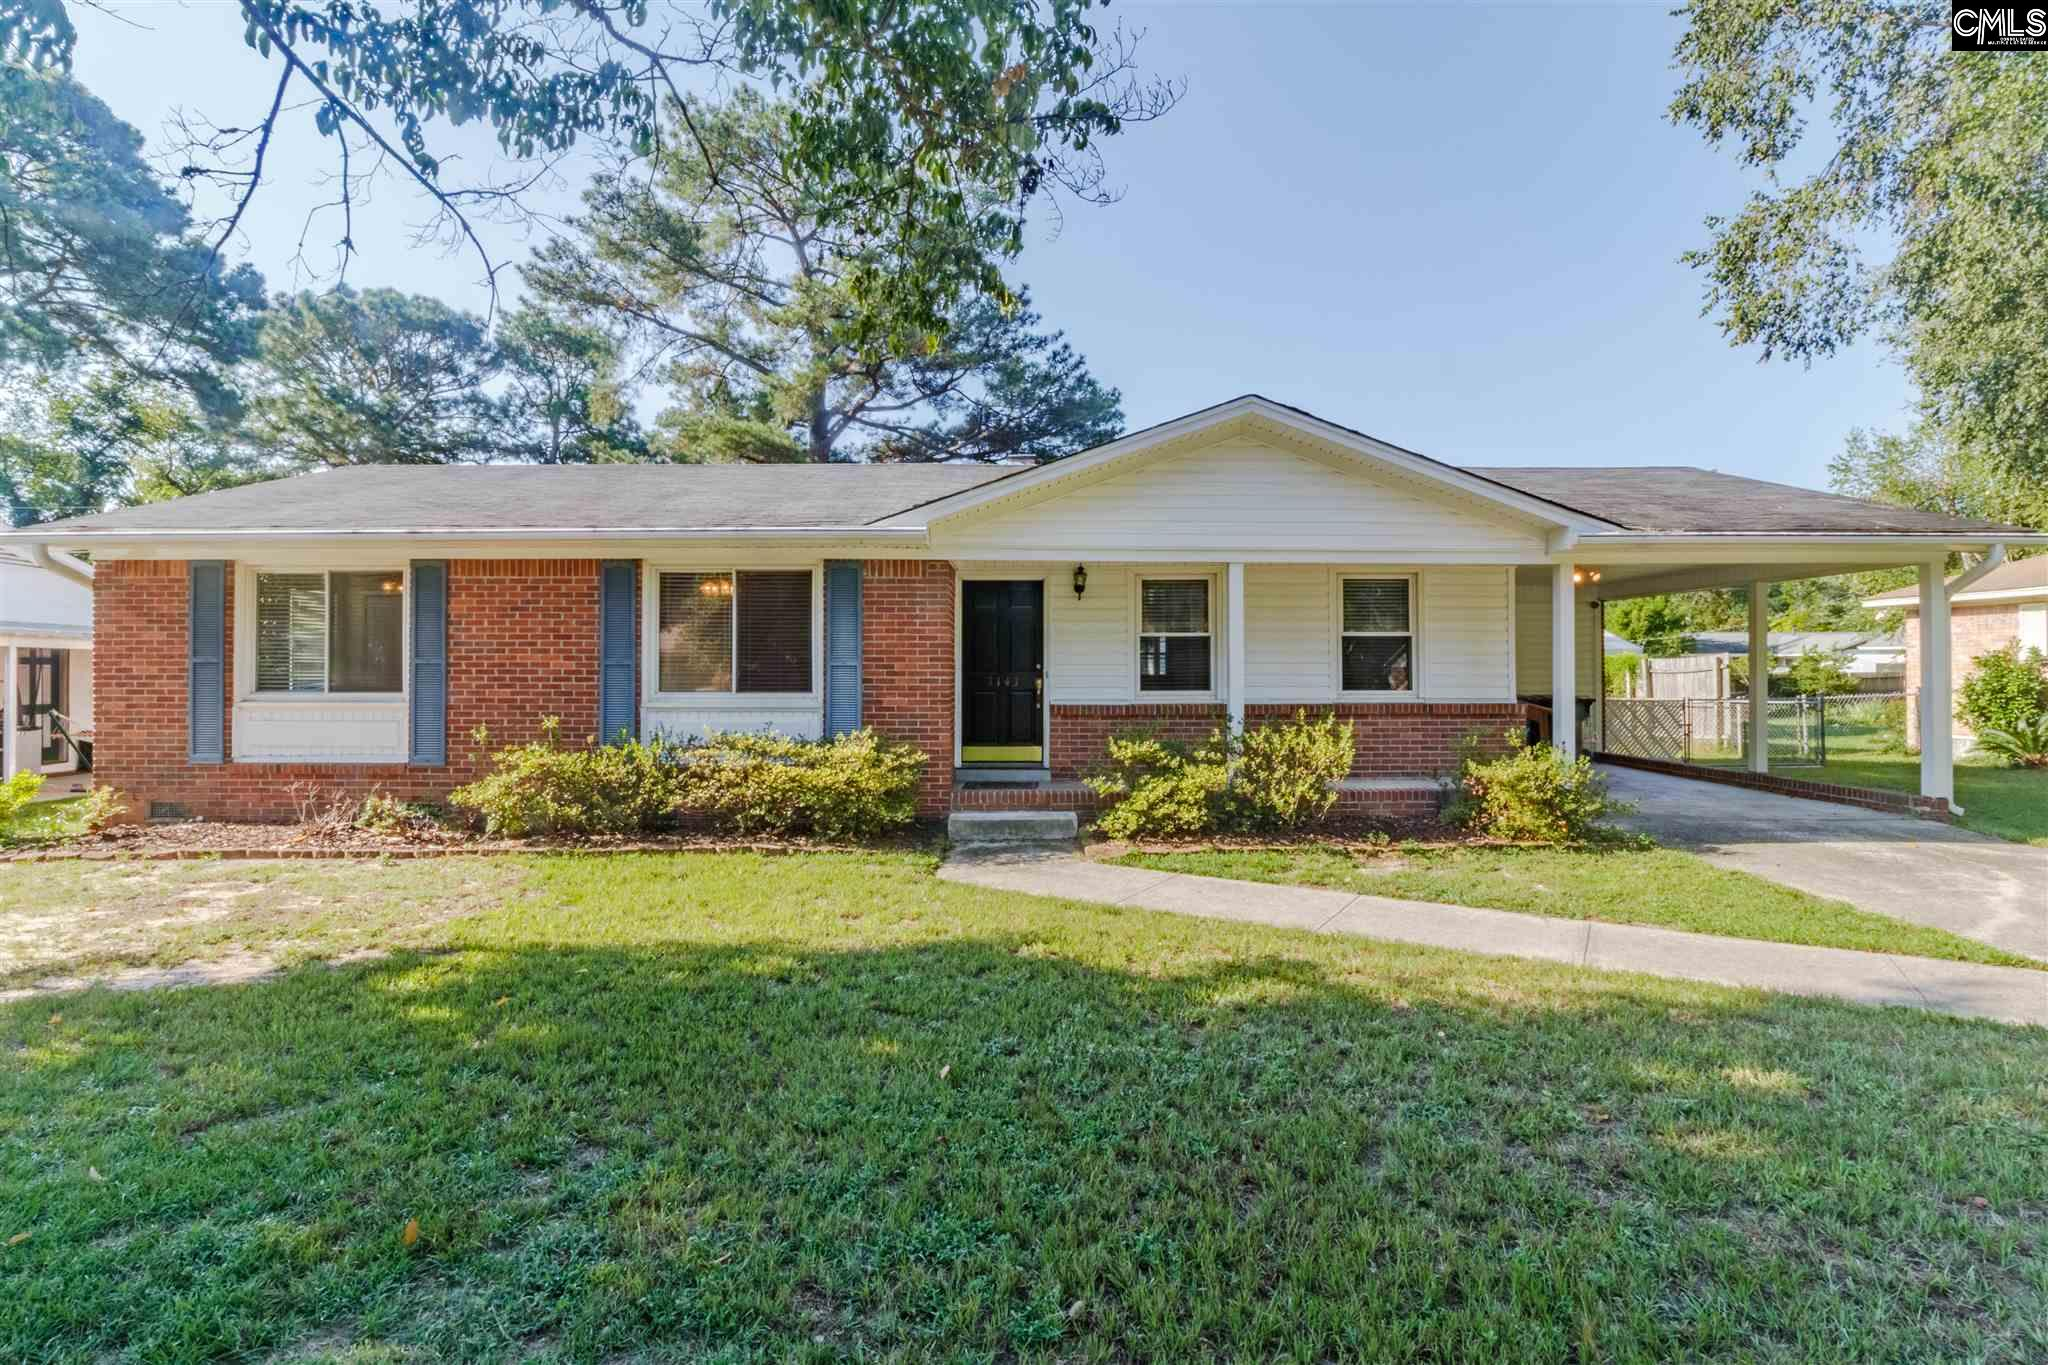 3143 Sierra West Columbia, SC 29170